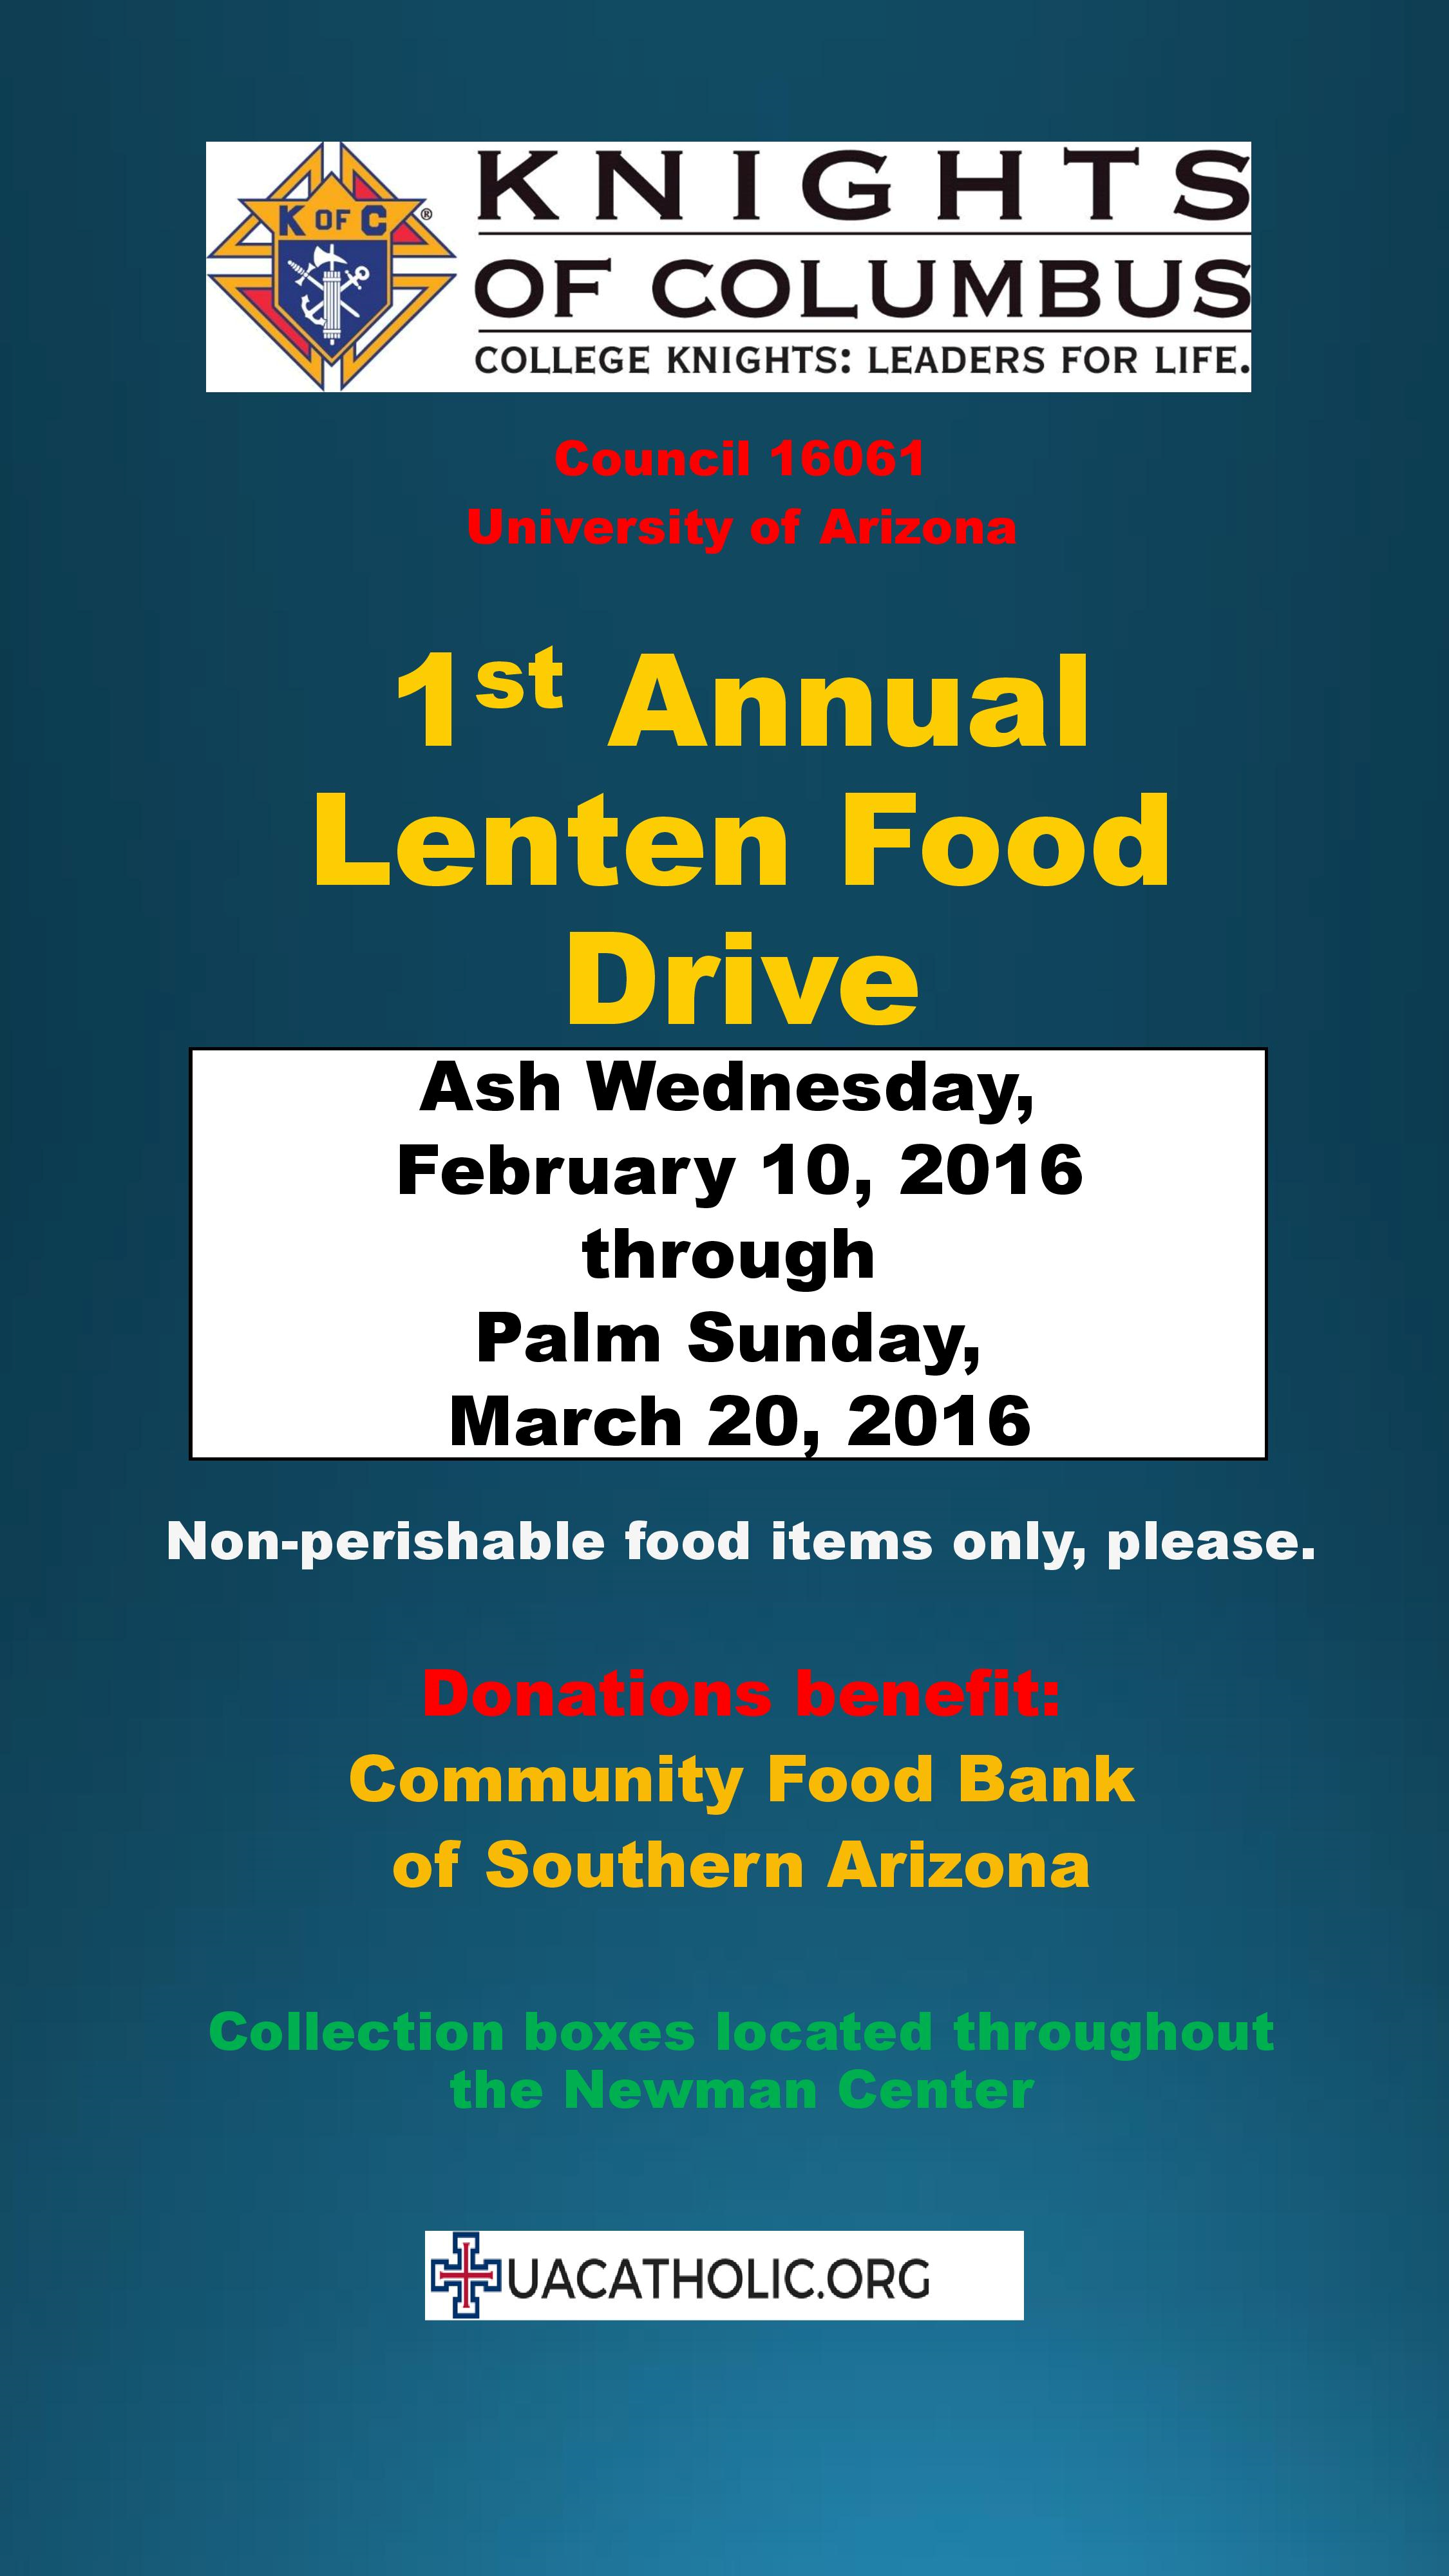 1st Annual Lenten Food Drive: Ash Wednesday through Palm Sunday (Feb 10–March 20).  Non-perishable food items only, please.  Donations Benefit the Community Food Bank of Southern Arizona.  Collection Boxes are located throughout the Newman Center